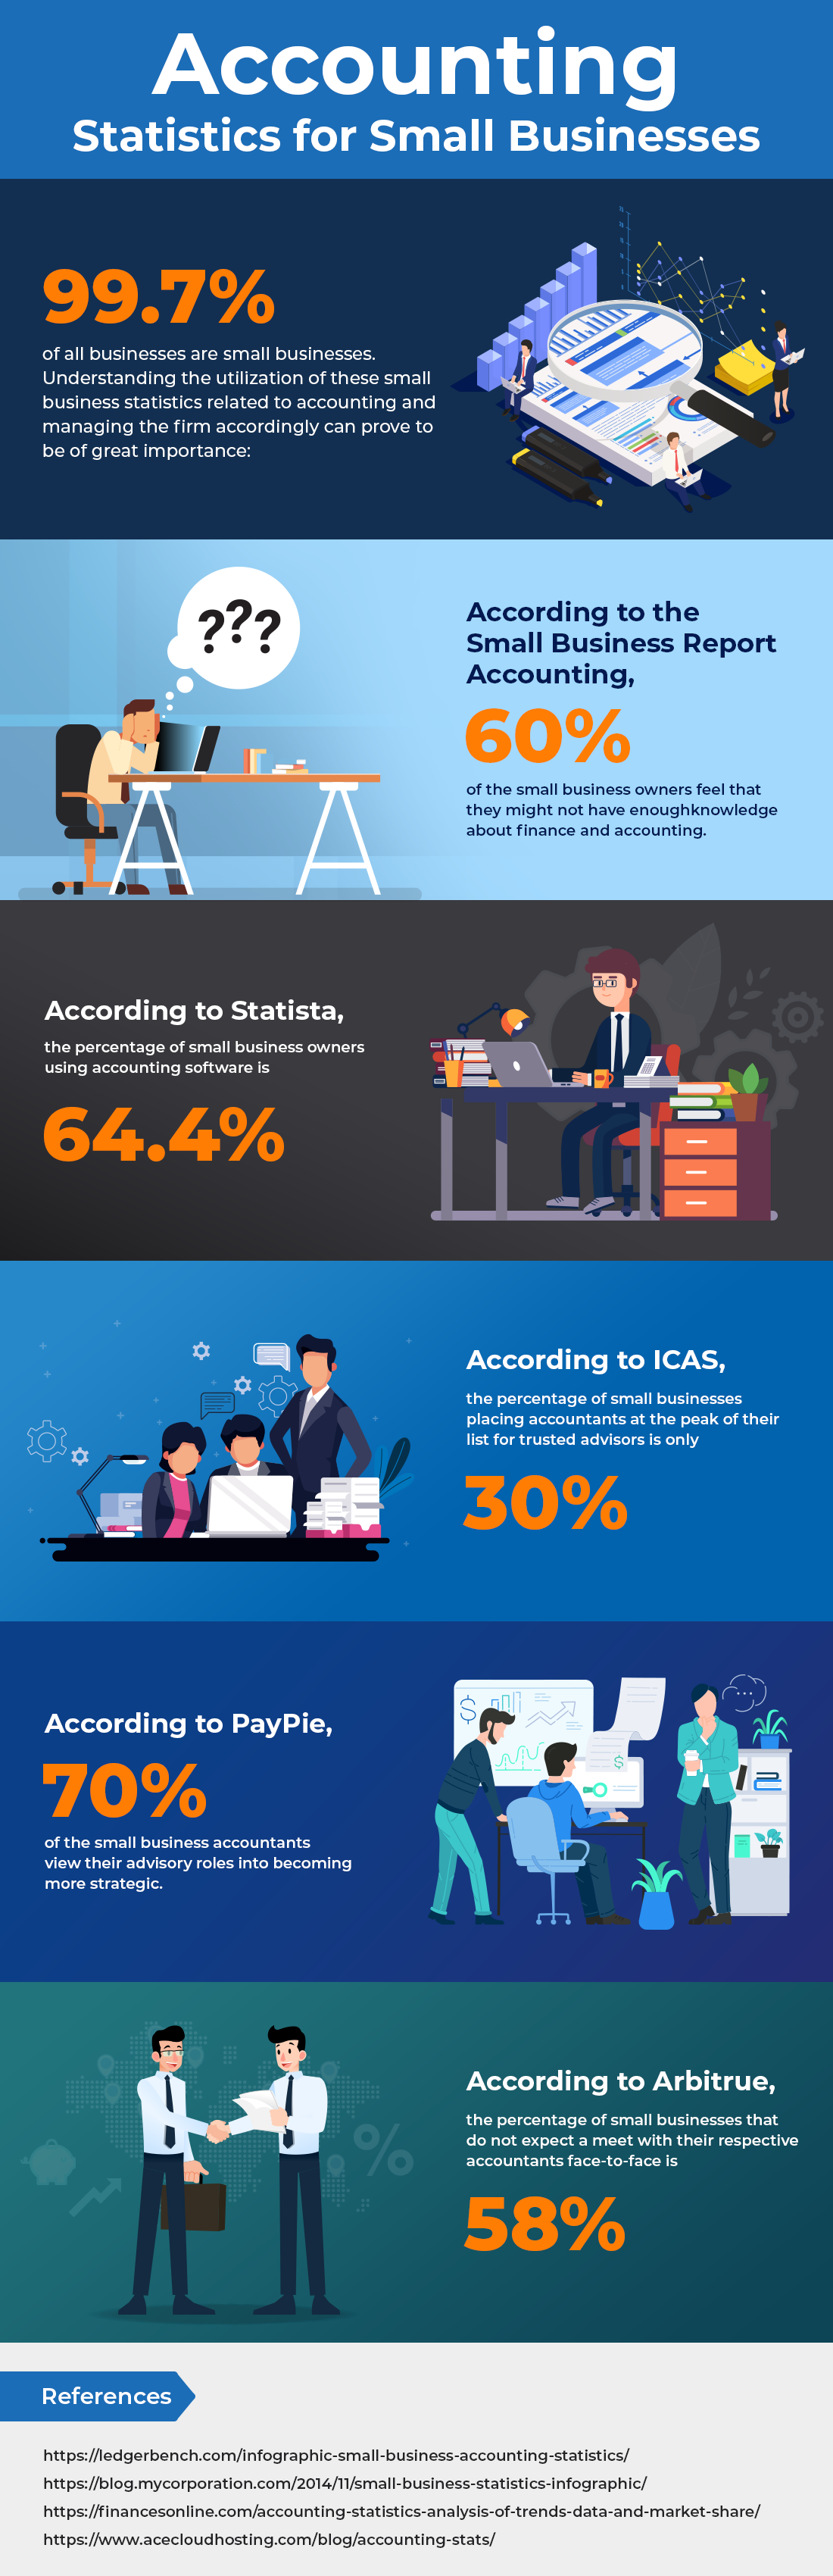 Small Business Statistic Infographic